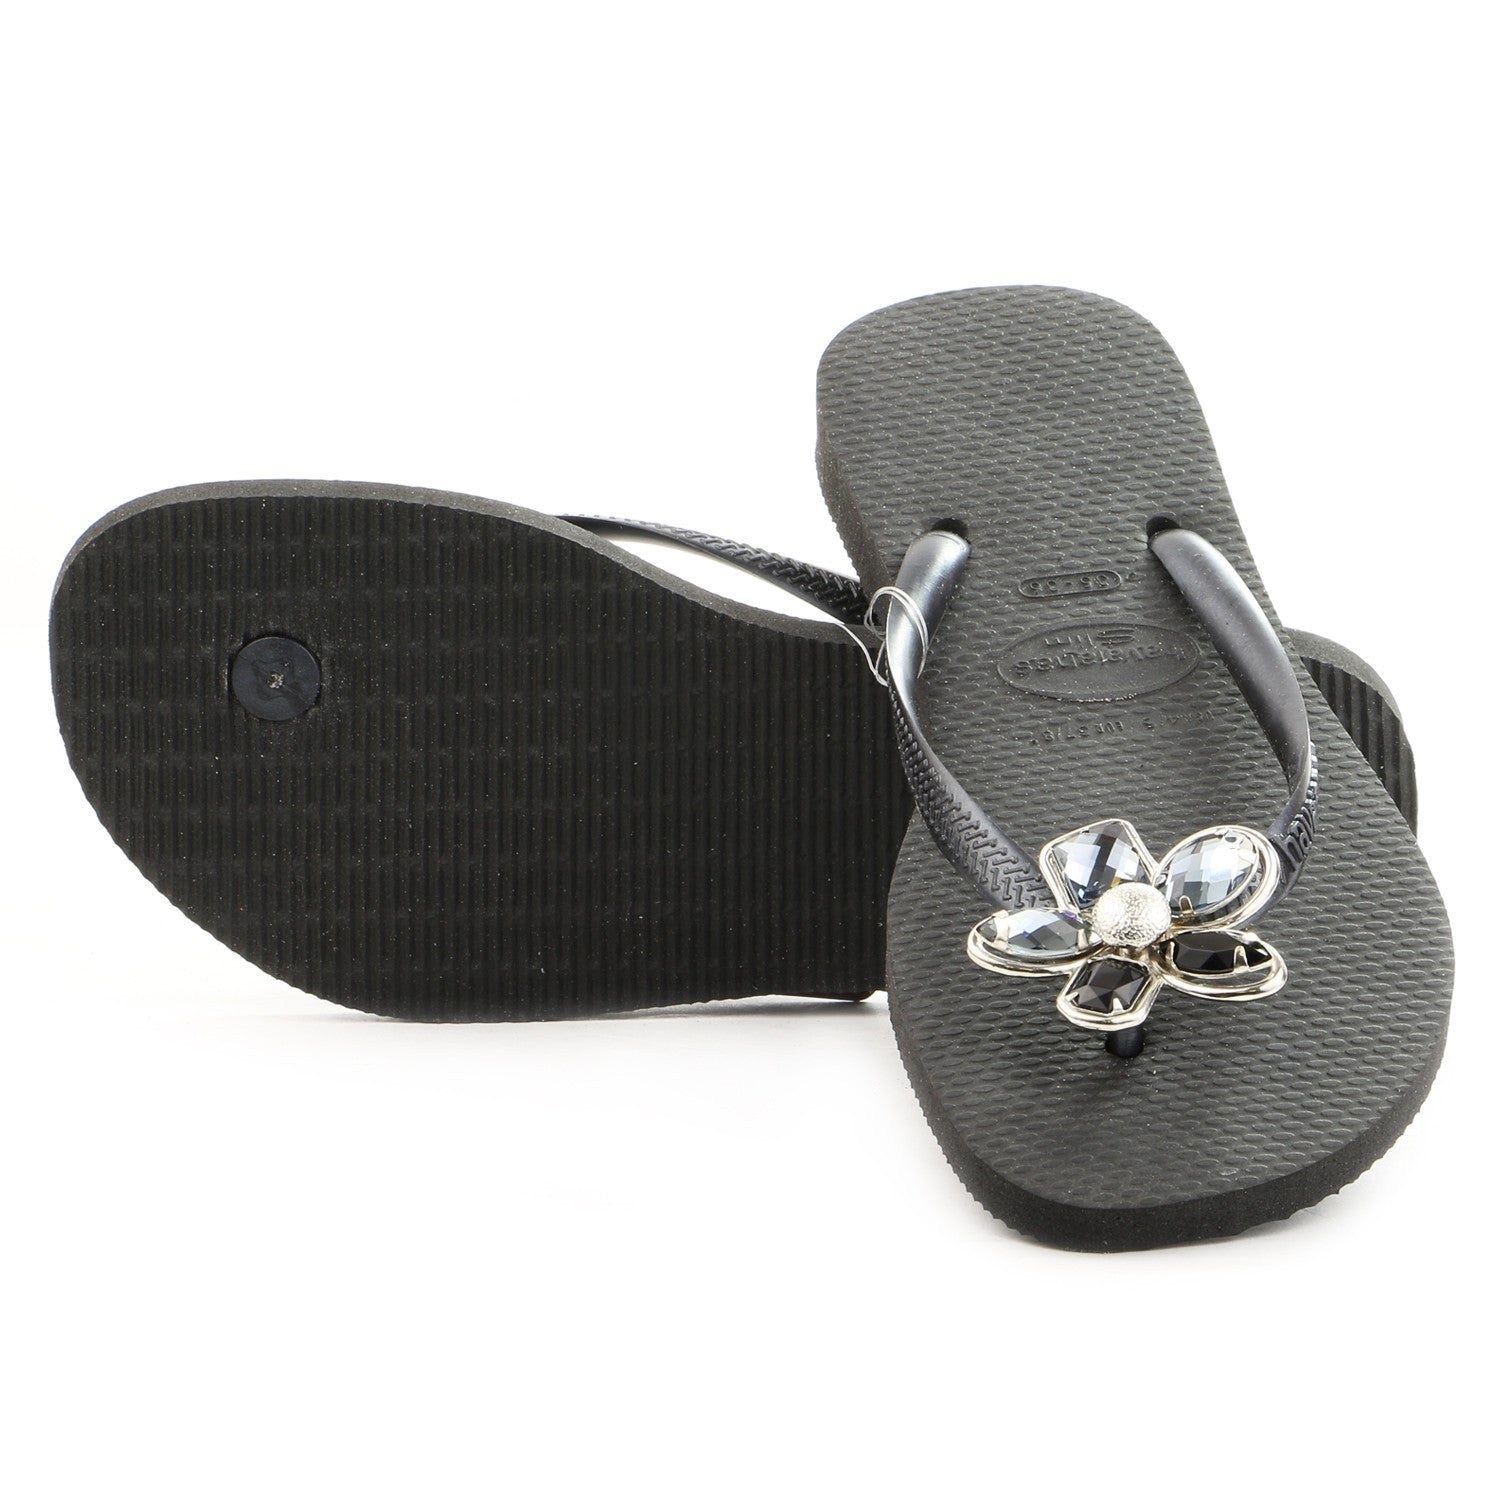 1fcb138e027047 Havaianas Slim Luxury Thong Flip Flop Sandal - Black - Womens -  Shoplifestyle